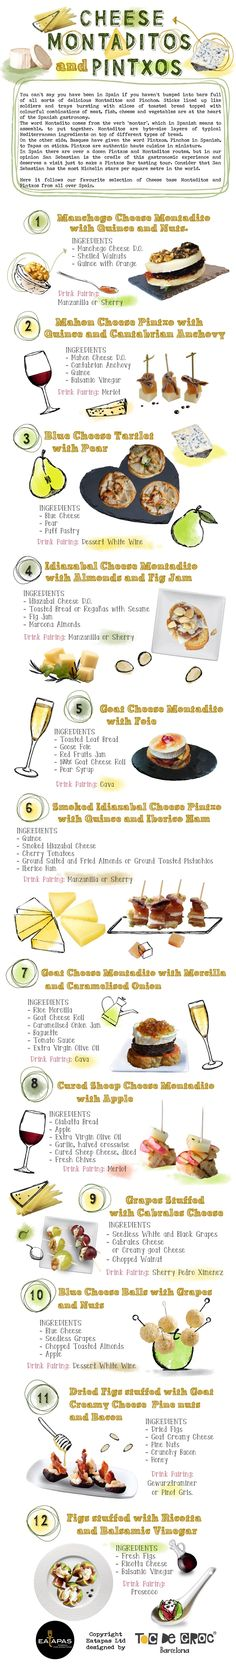 Do you know our favorite #Cheese #Montaditos & #Pinchos? Here they are!